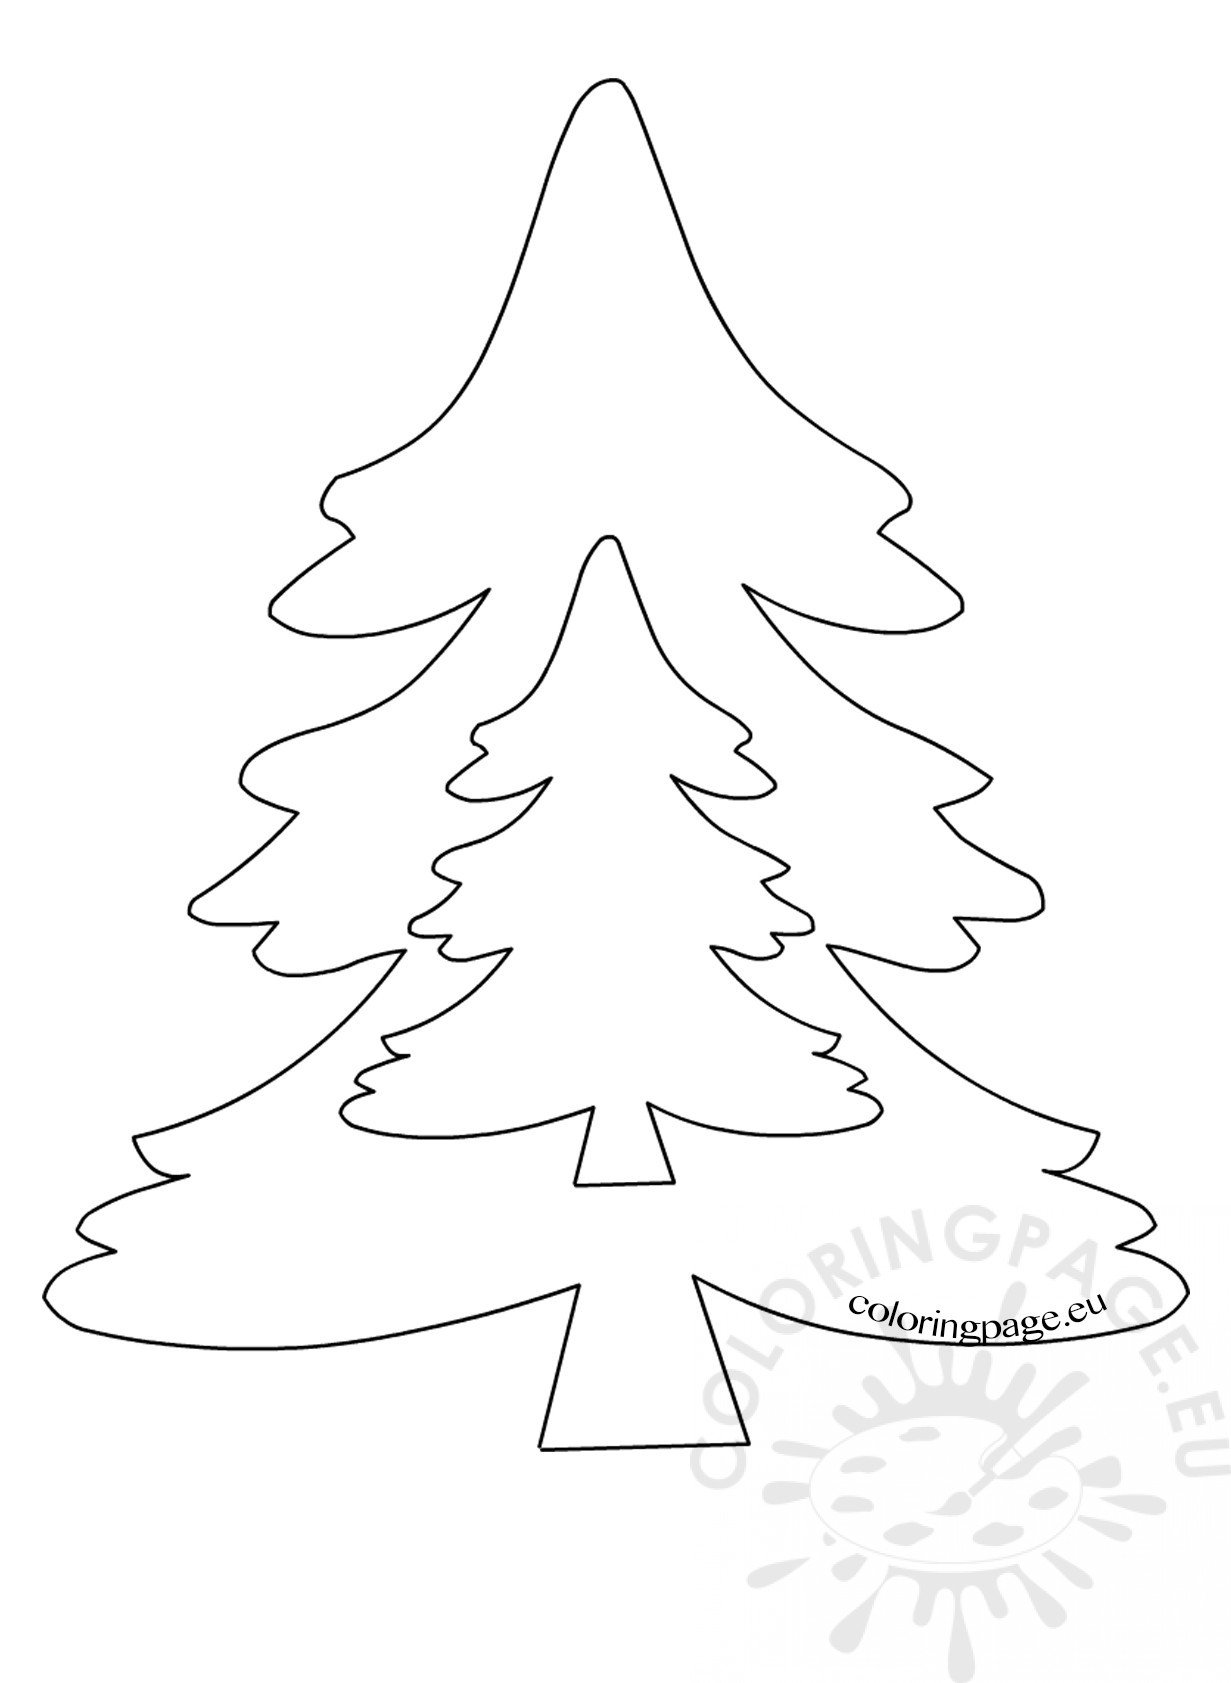 Patterns For Felt Christmas Tree Ornaments Coloring Page